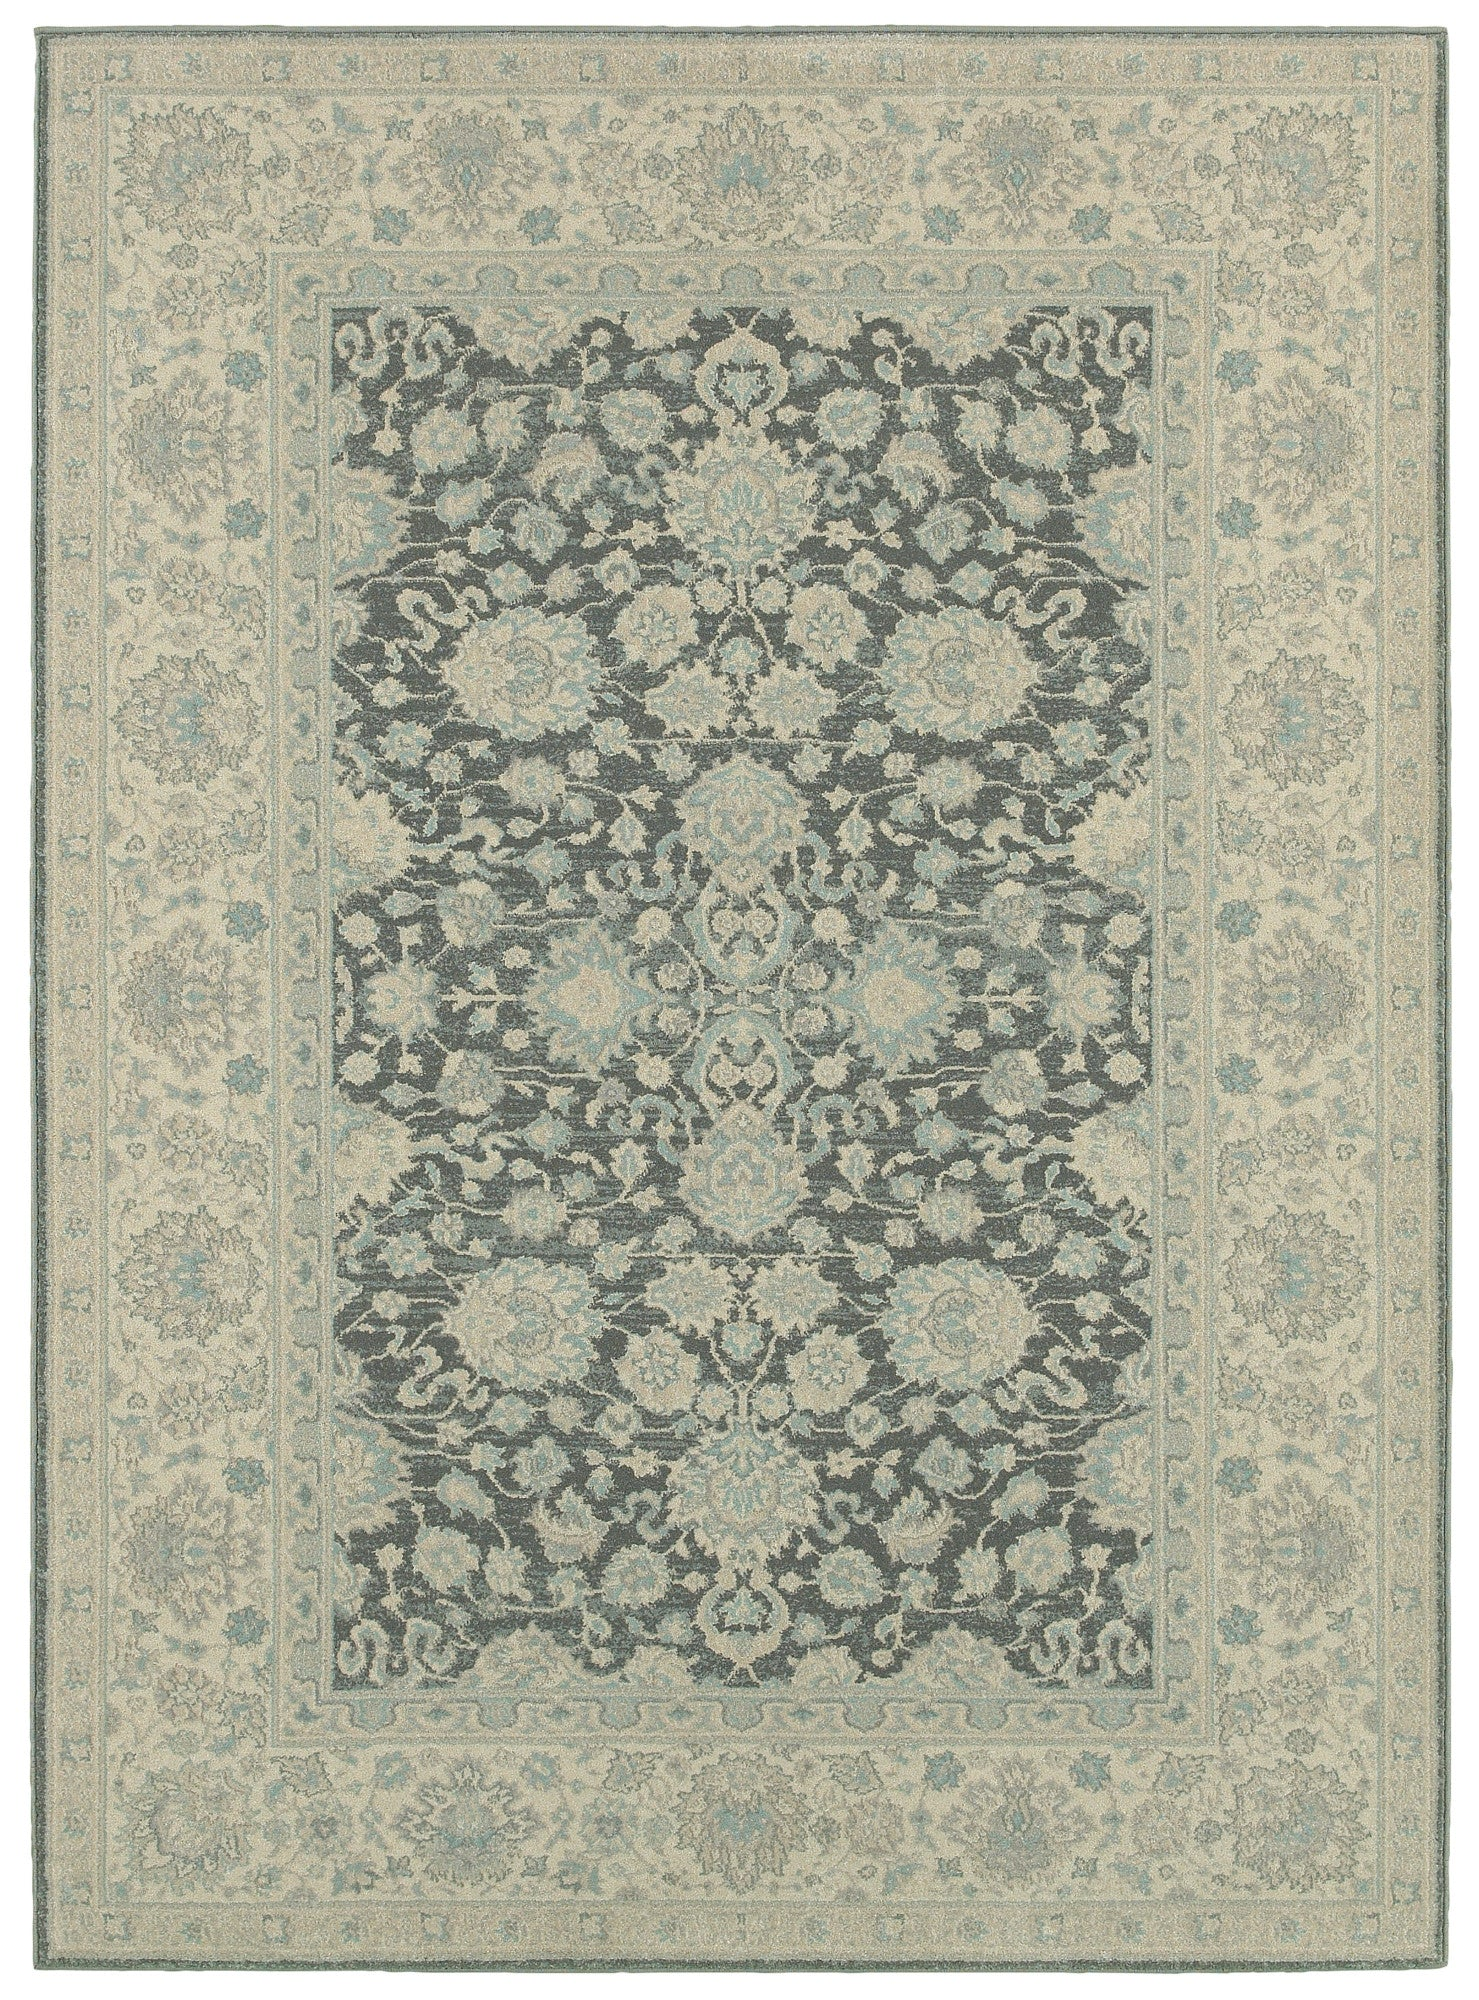 LR Resources Antigua 80997 Silver/Blue Area Rug